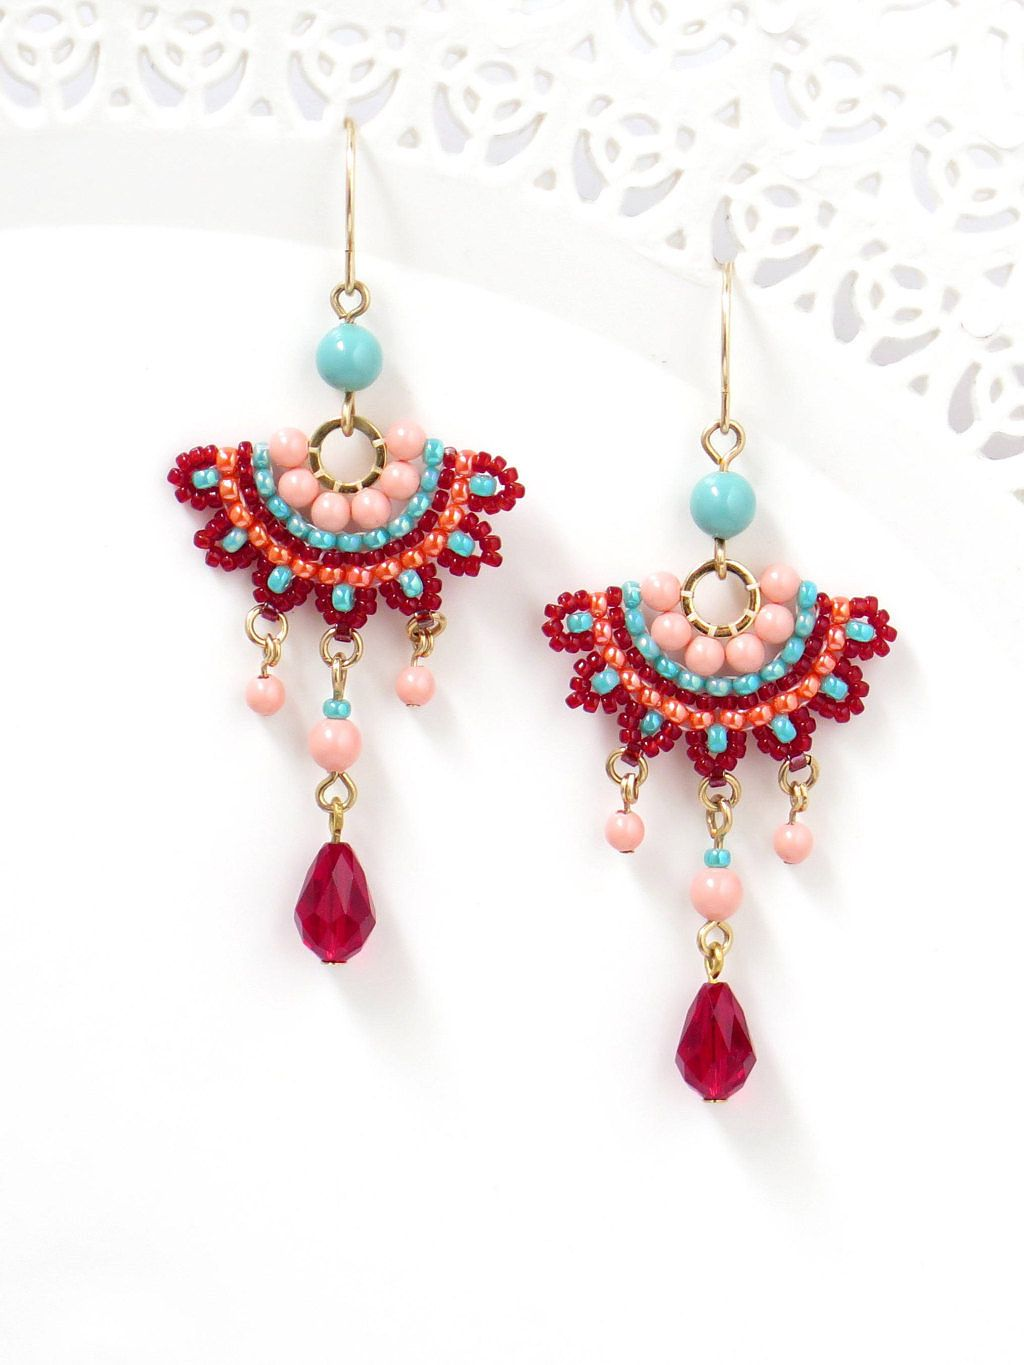 18a550f202c78 Fashion earrings, Colorful chandelier earrings crystal, Festival ...